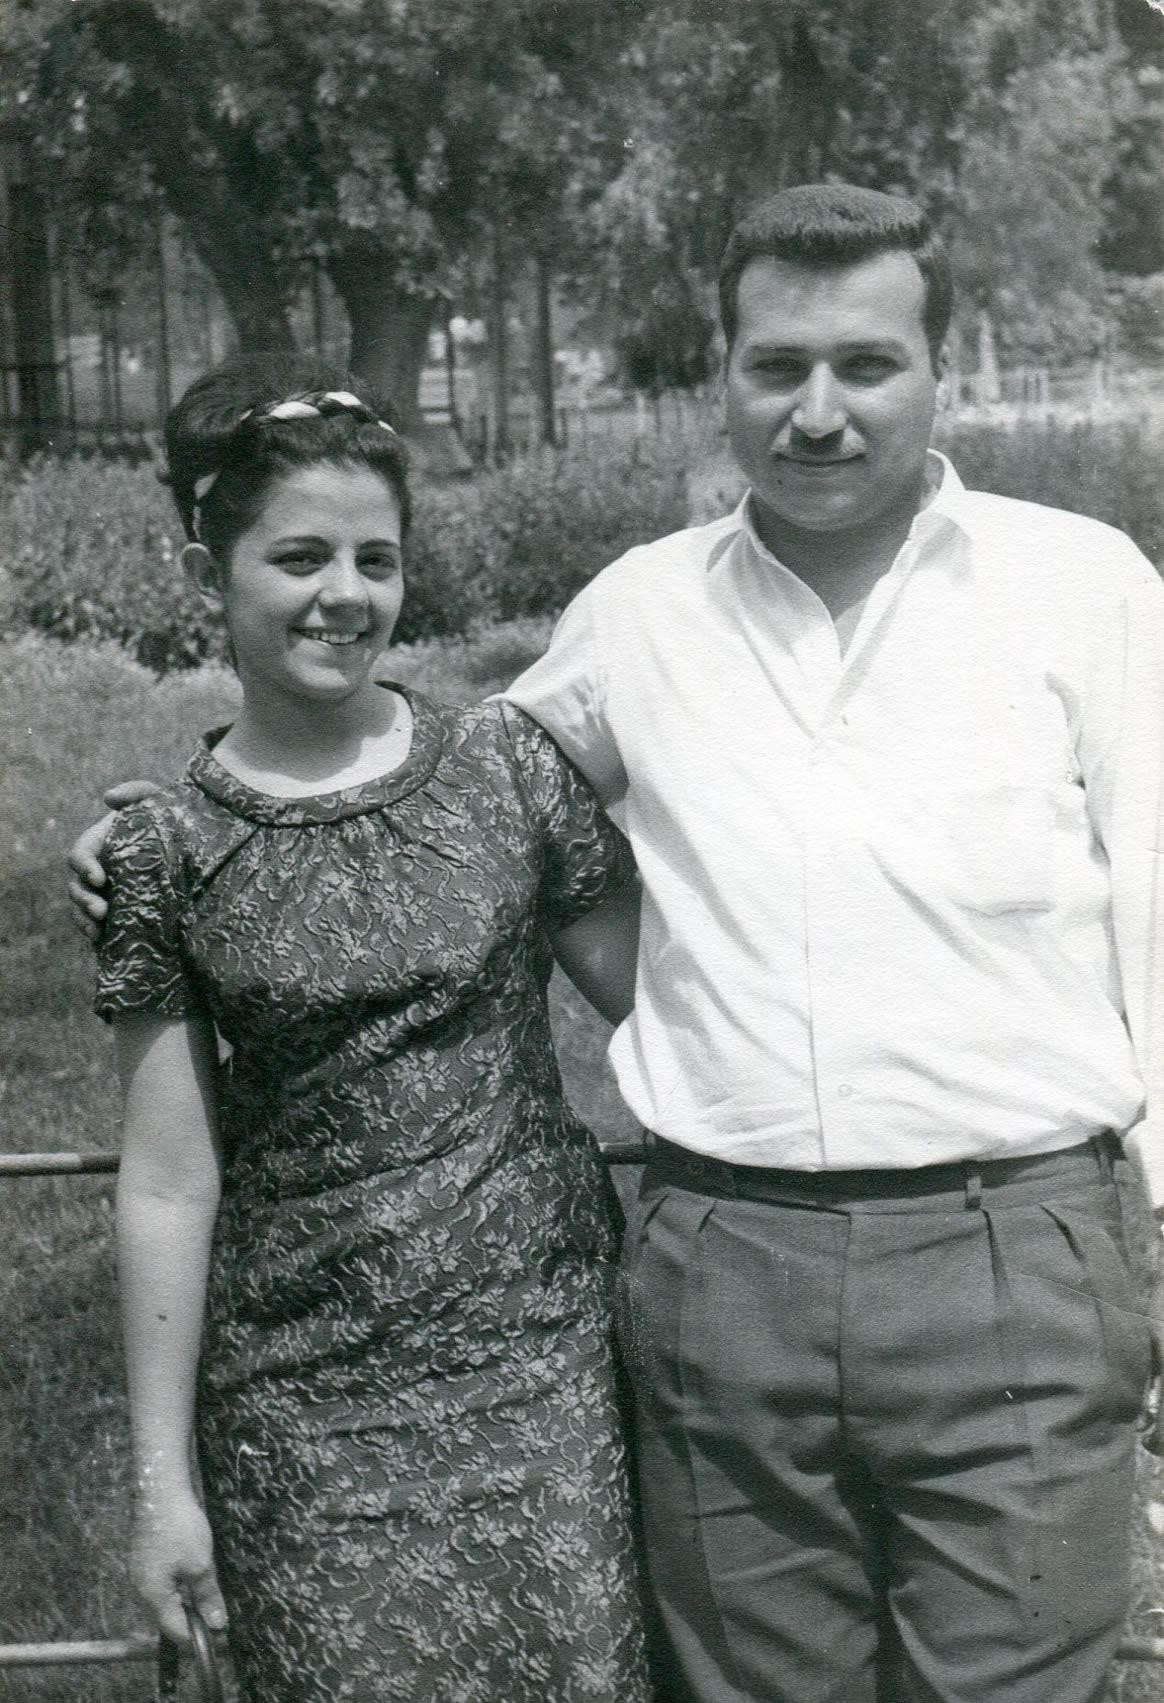 Black and white photo of my father with his arm around my mother, standing in a park in Cairo, Egypt, in the 1960s.